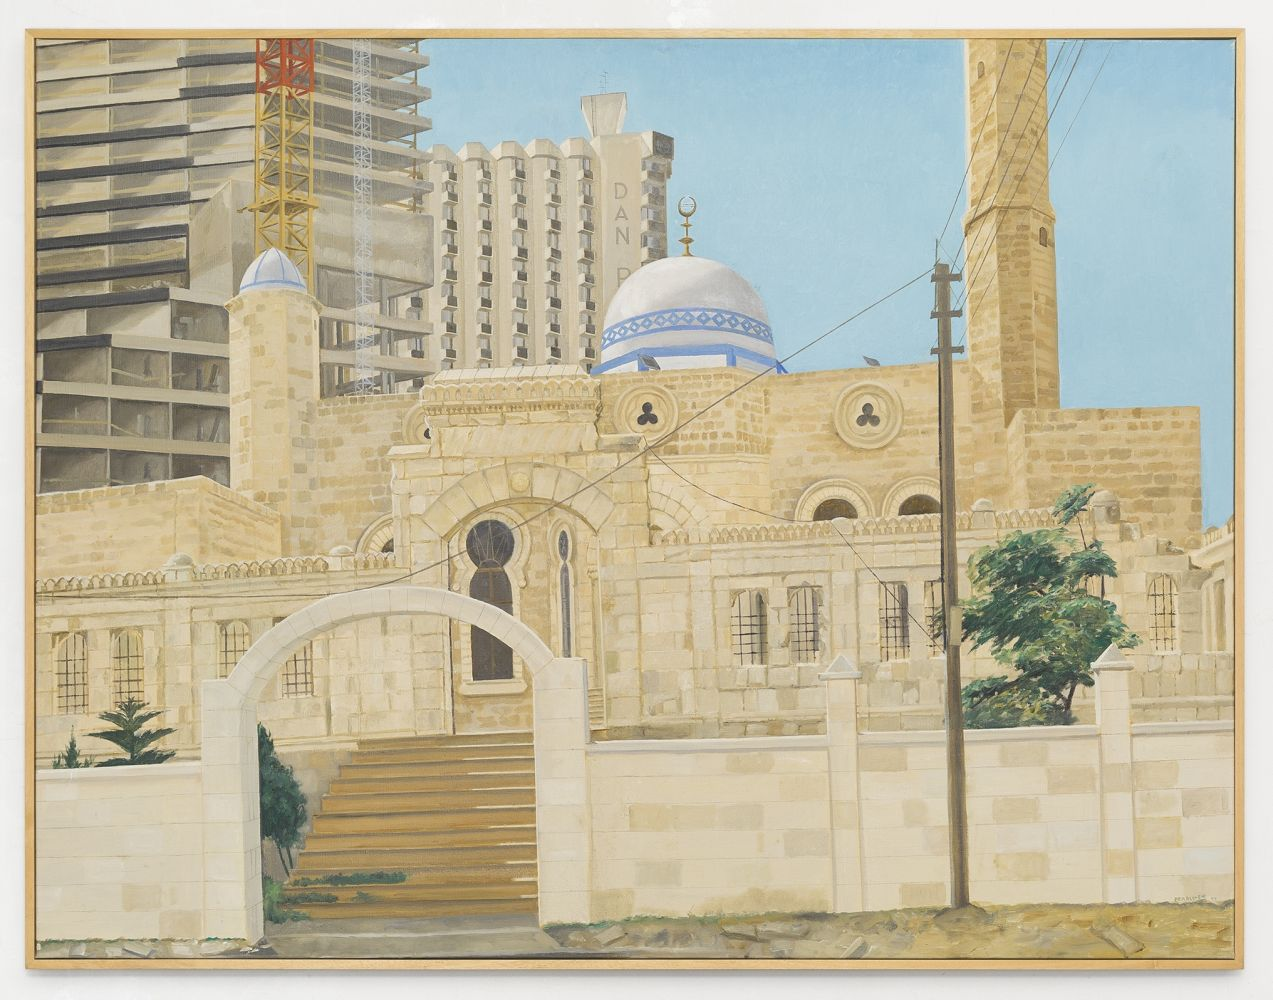 Image of Mosque and New Construction, Tel Aviv